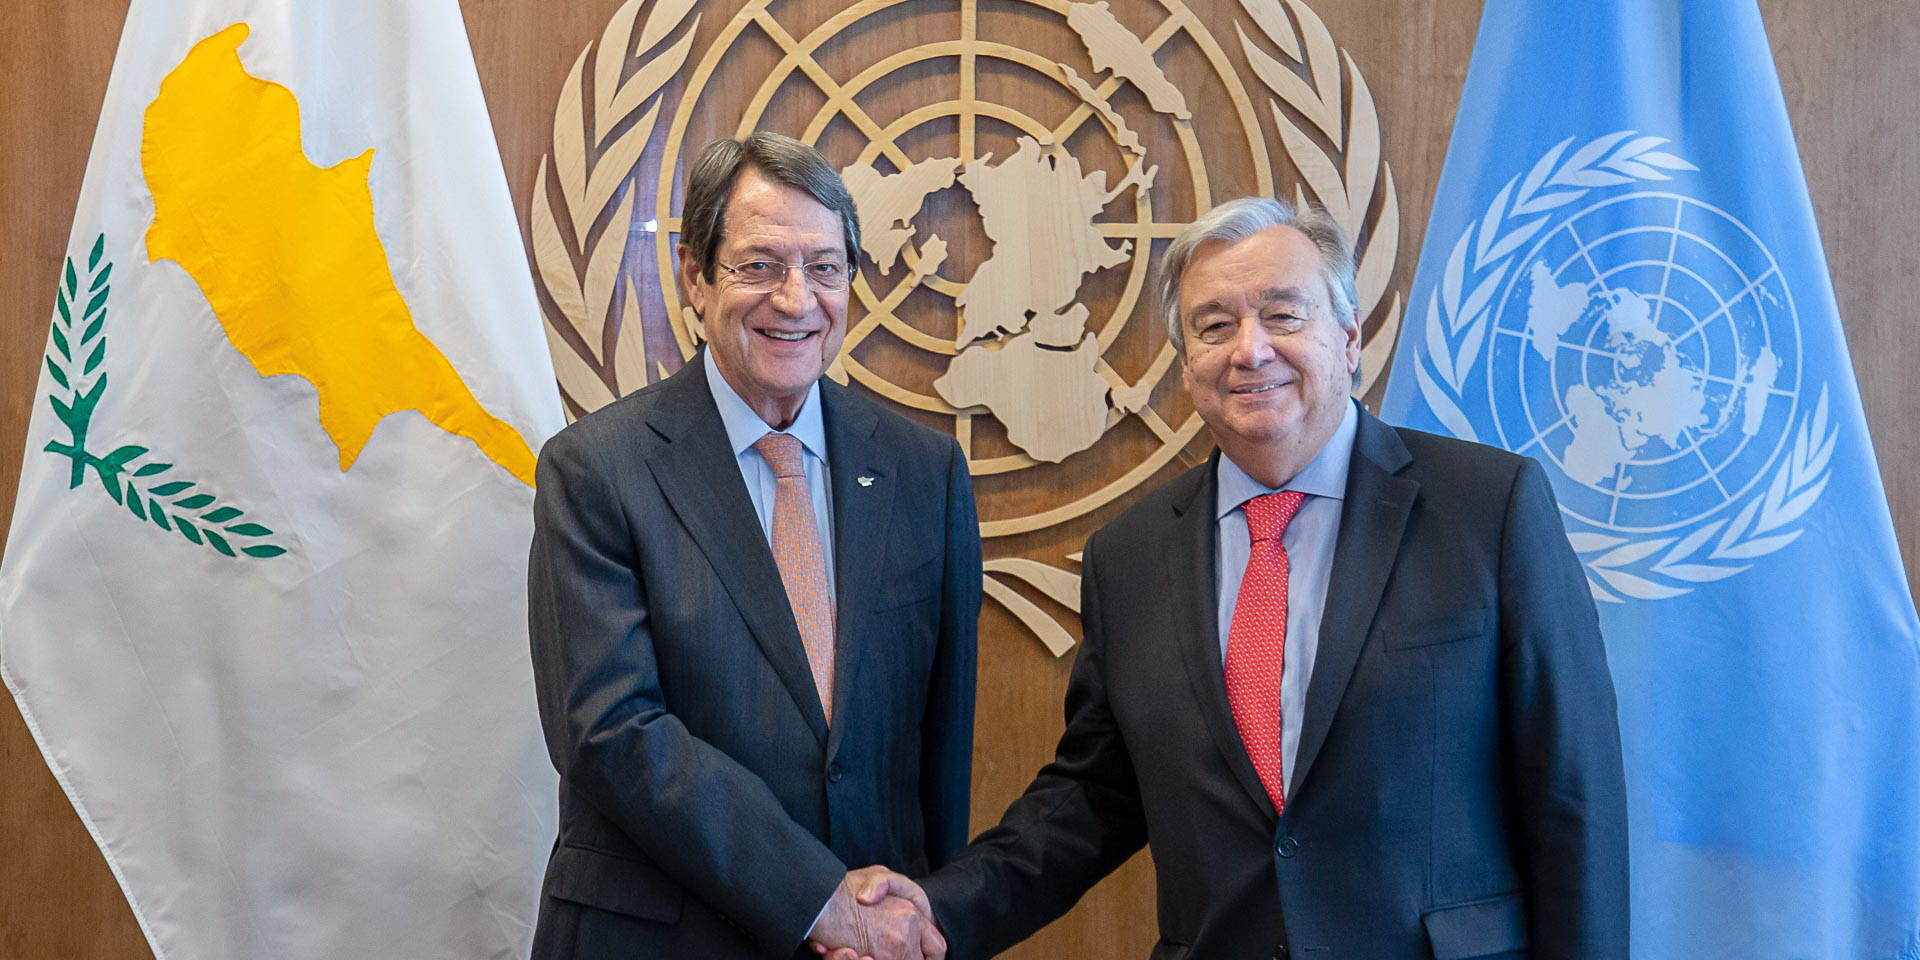 Cyprus: Anastasiades welcomes Guterres' commitment to resume efforts to resolve the Cyprus issue